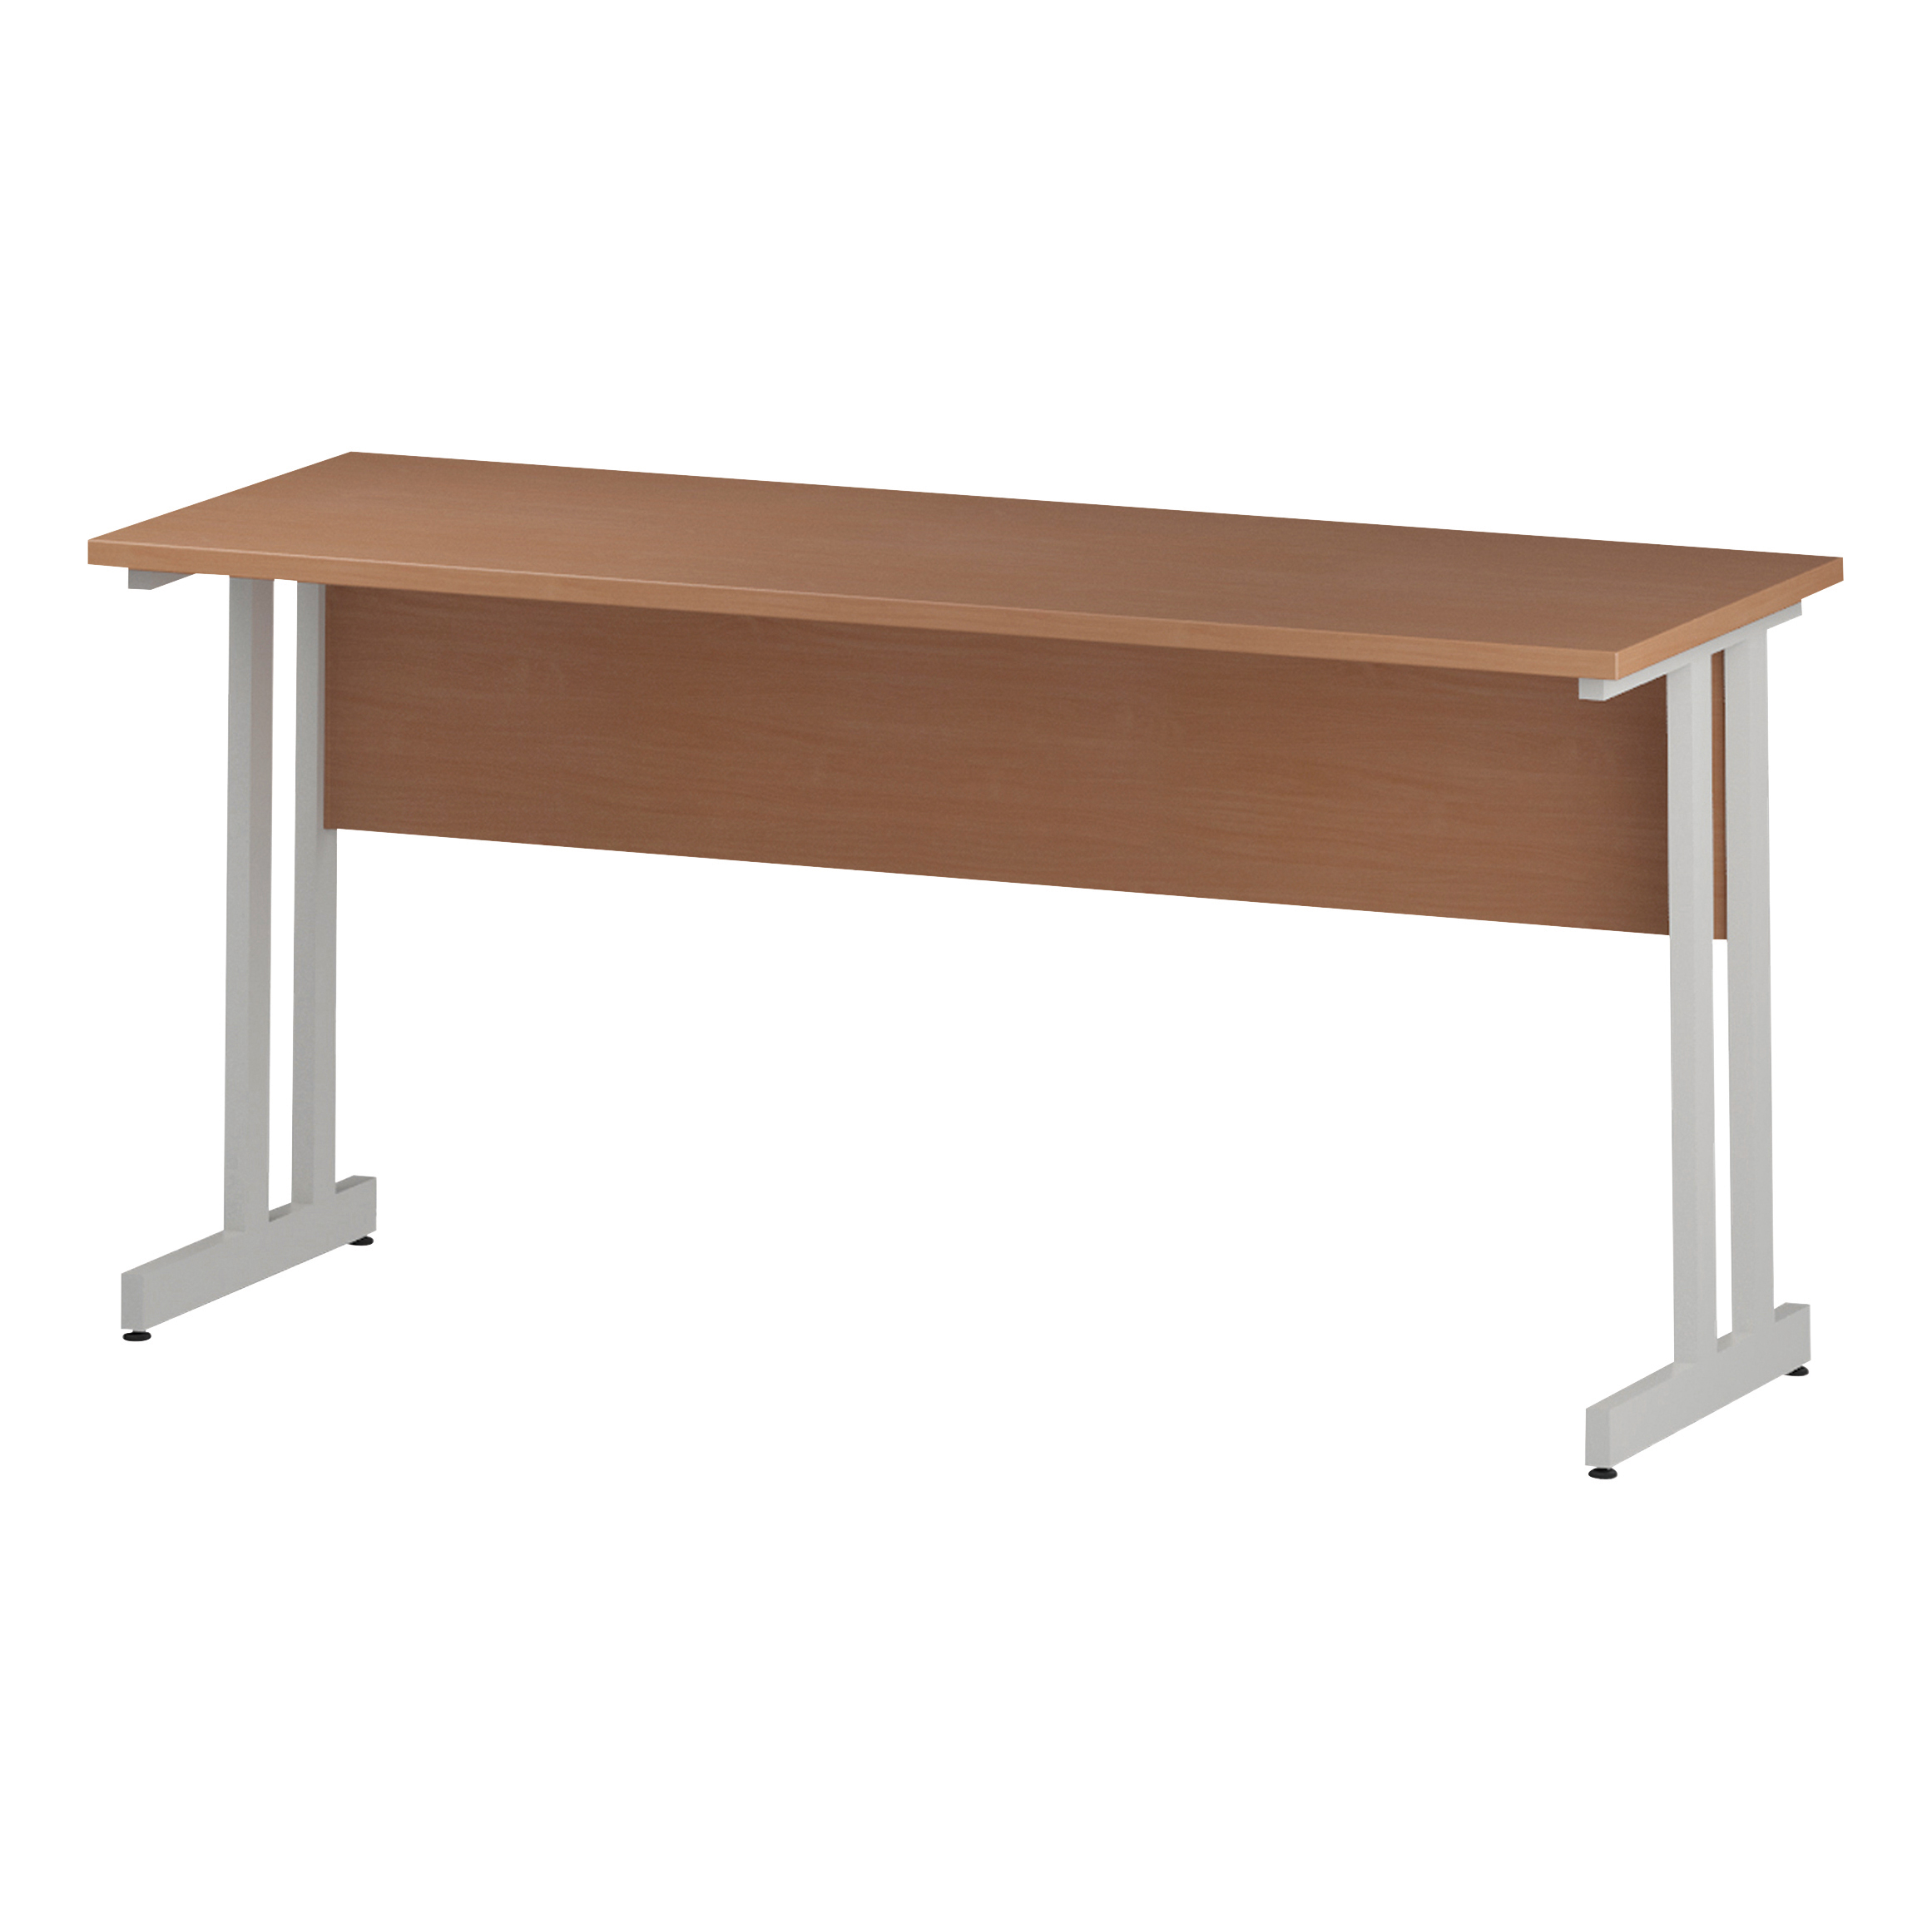 Trexus Rectangular Slim Desk White Cantilever Leg 1600x600mm Beech Ref I001686